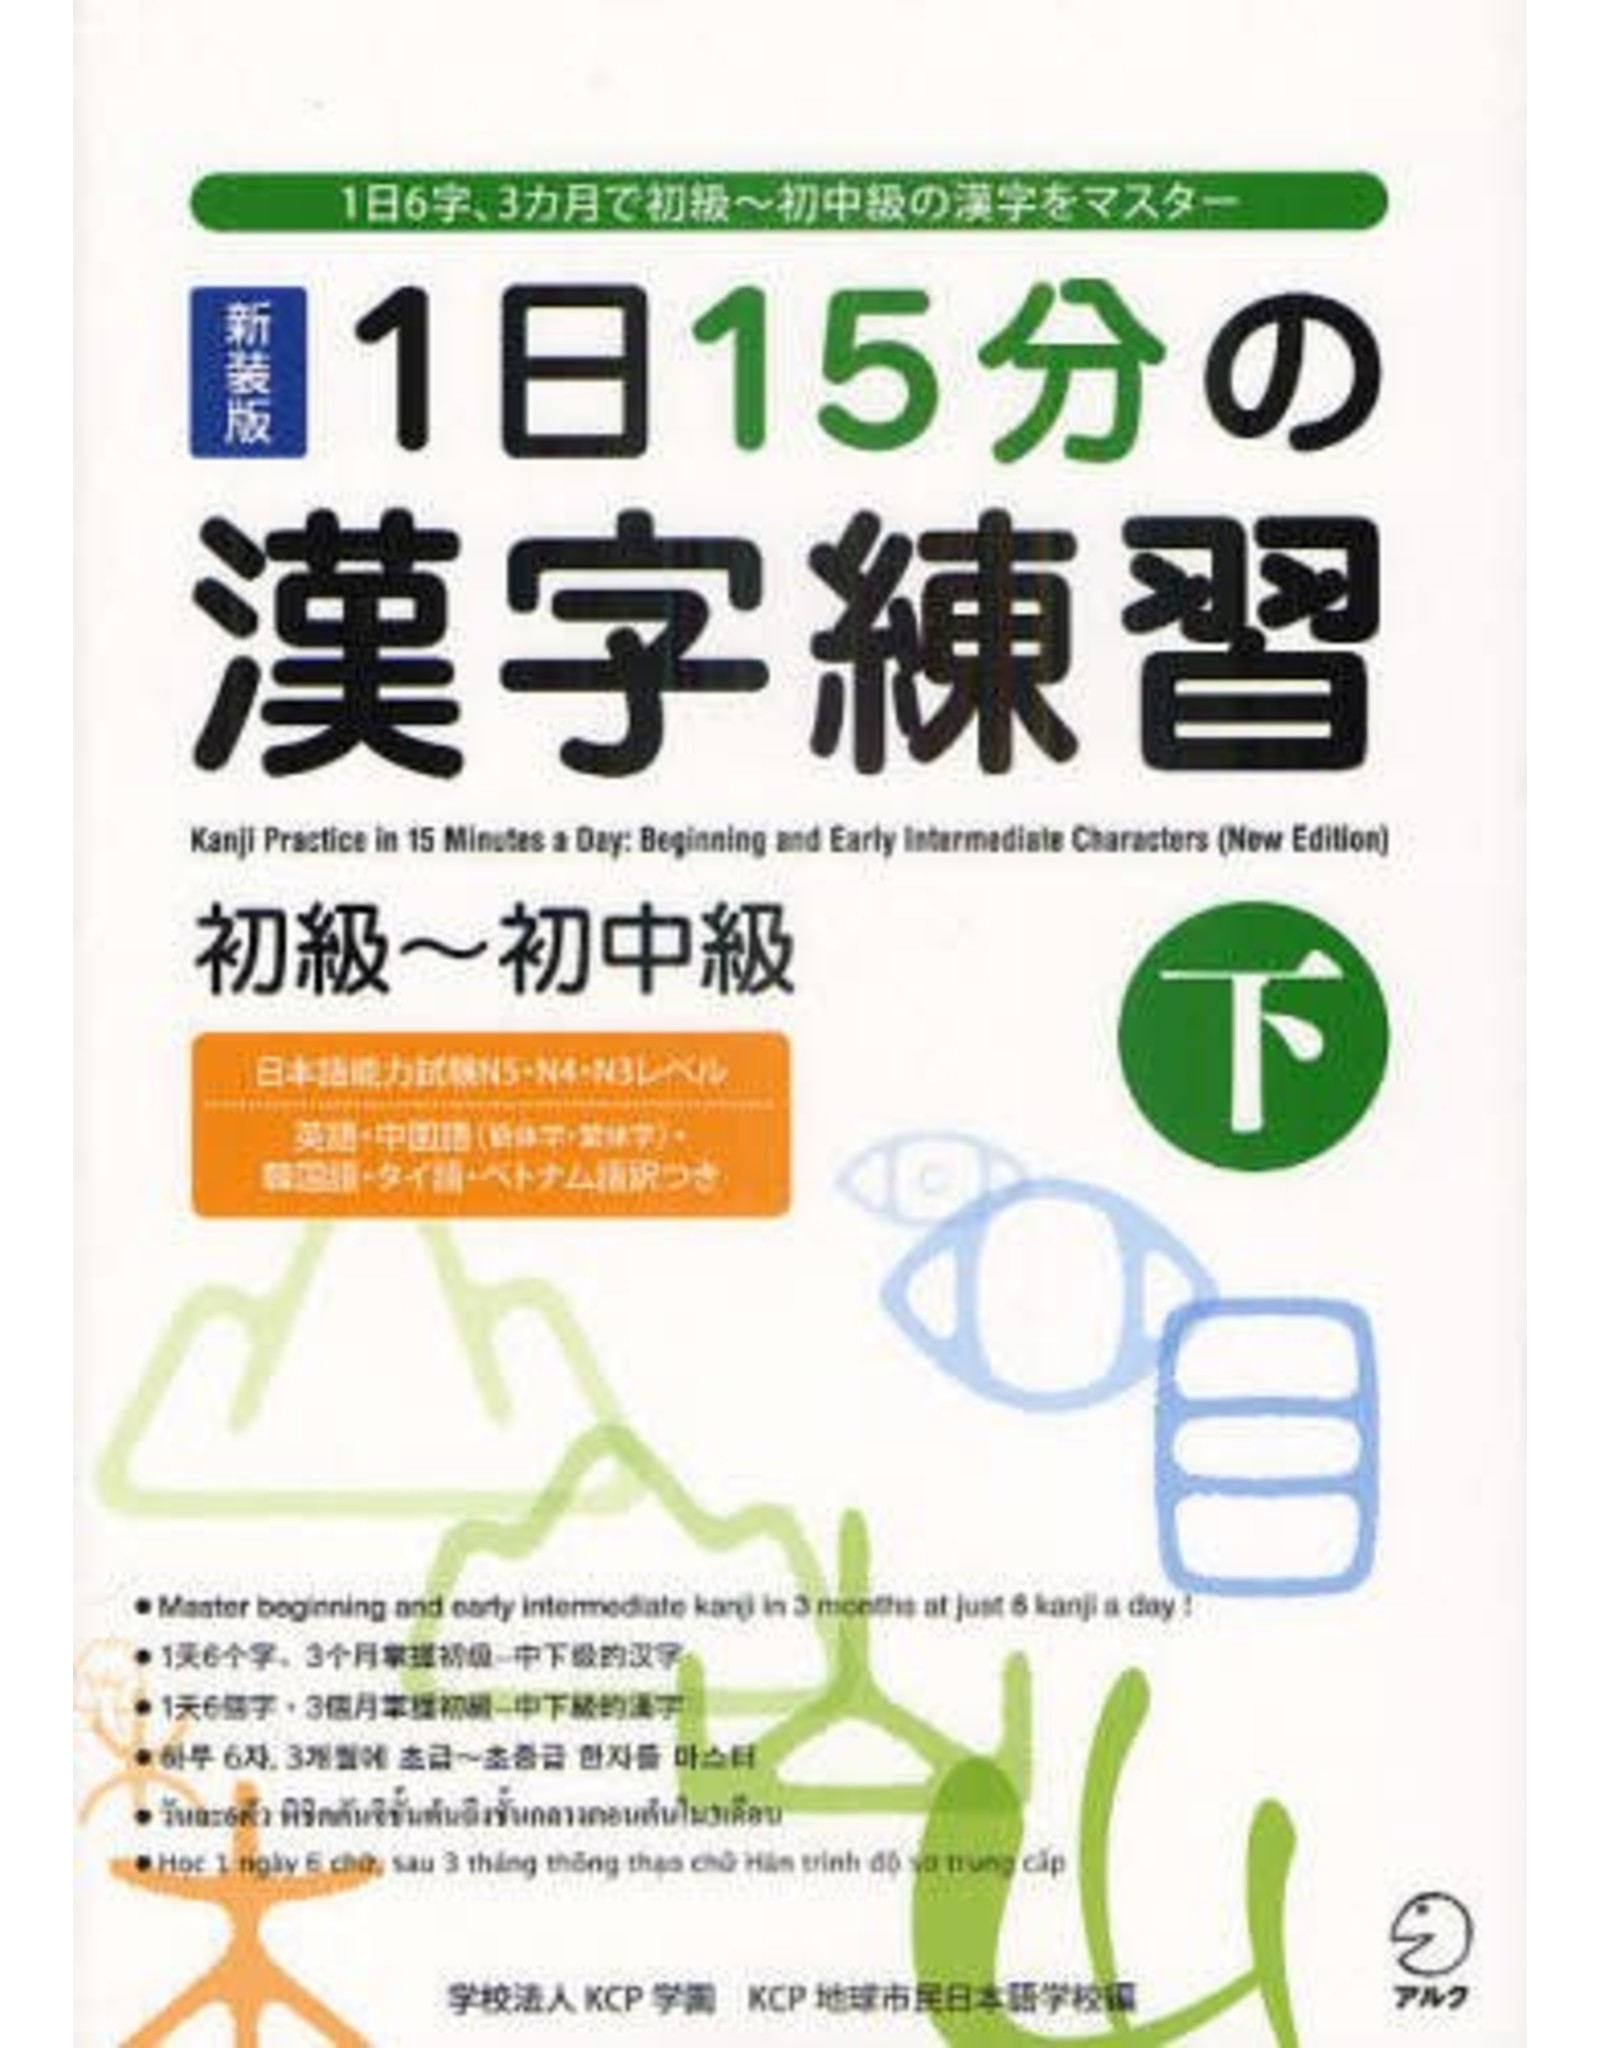 ALC KANJI PRACTICE IN 15 MINUTES A DAY VOL. 2 : BEGINNING AND EARLY INTERMEDIATE CHARACTERS [NEW EDITION]